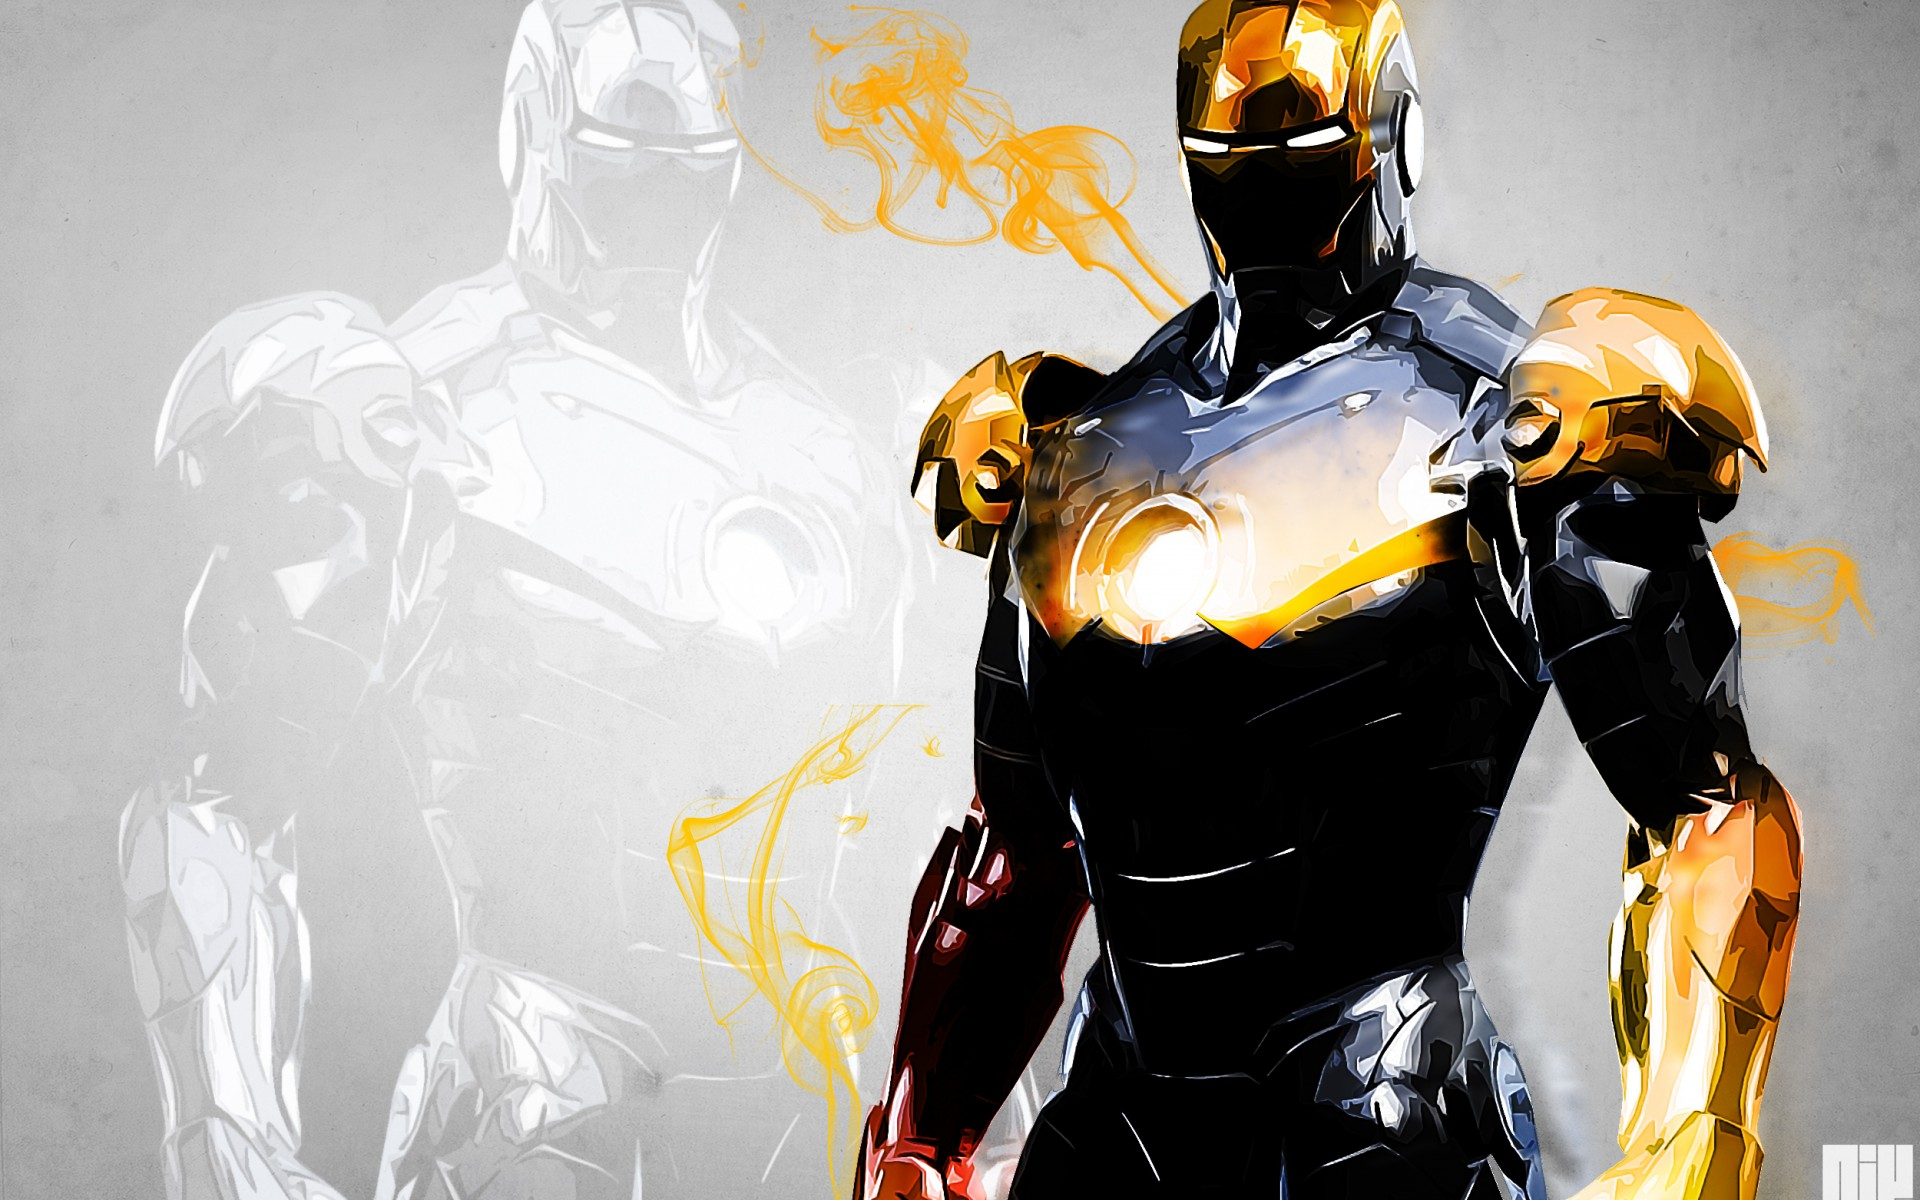 Iron man marvel comics superhero wallpaper 1920x1200 84804 1920x1200